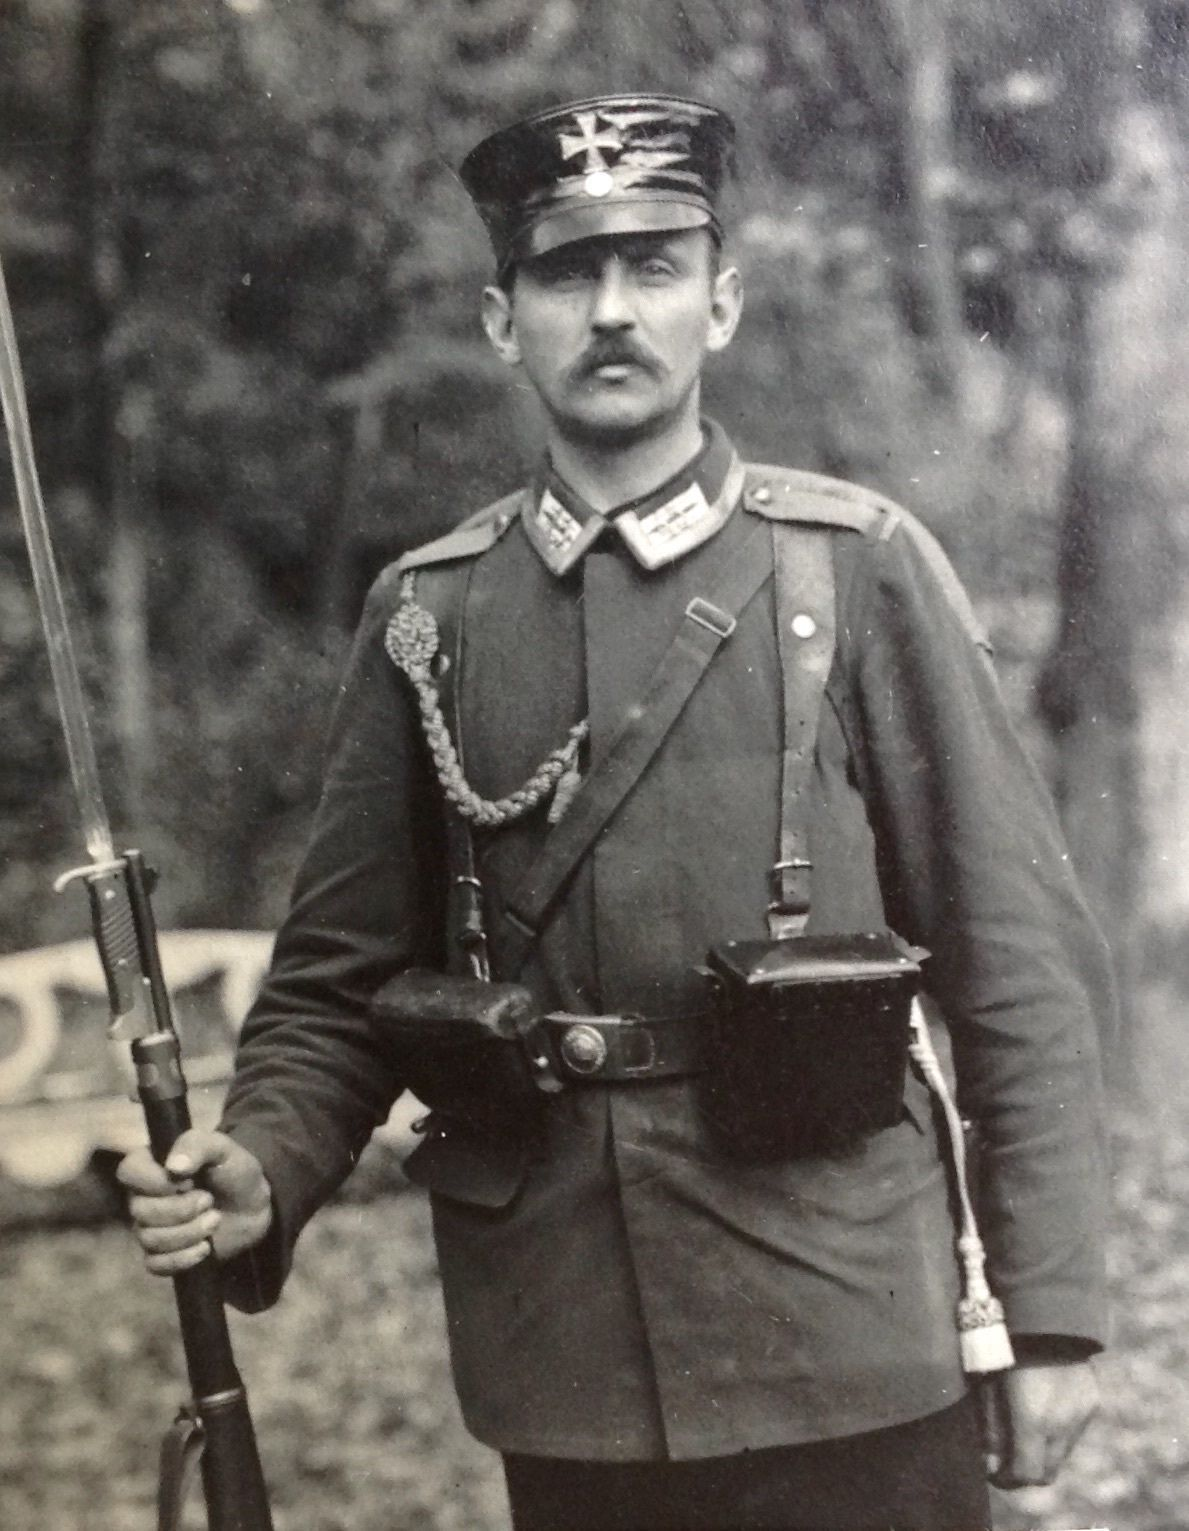 Orig WW1 German Photo: Landswehr Soldier, Cap, Lanyard, Rifle, Bayonet, DETAIL | eBay